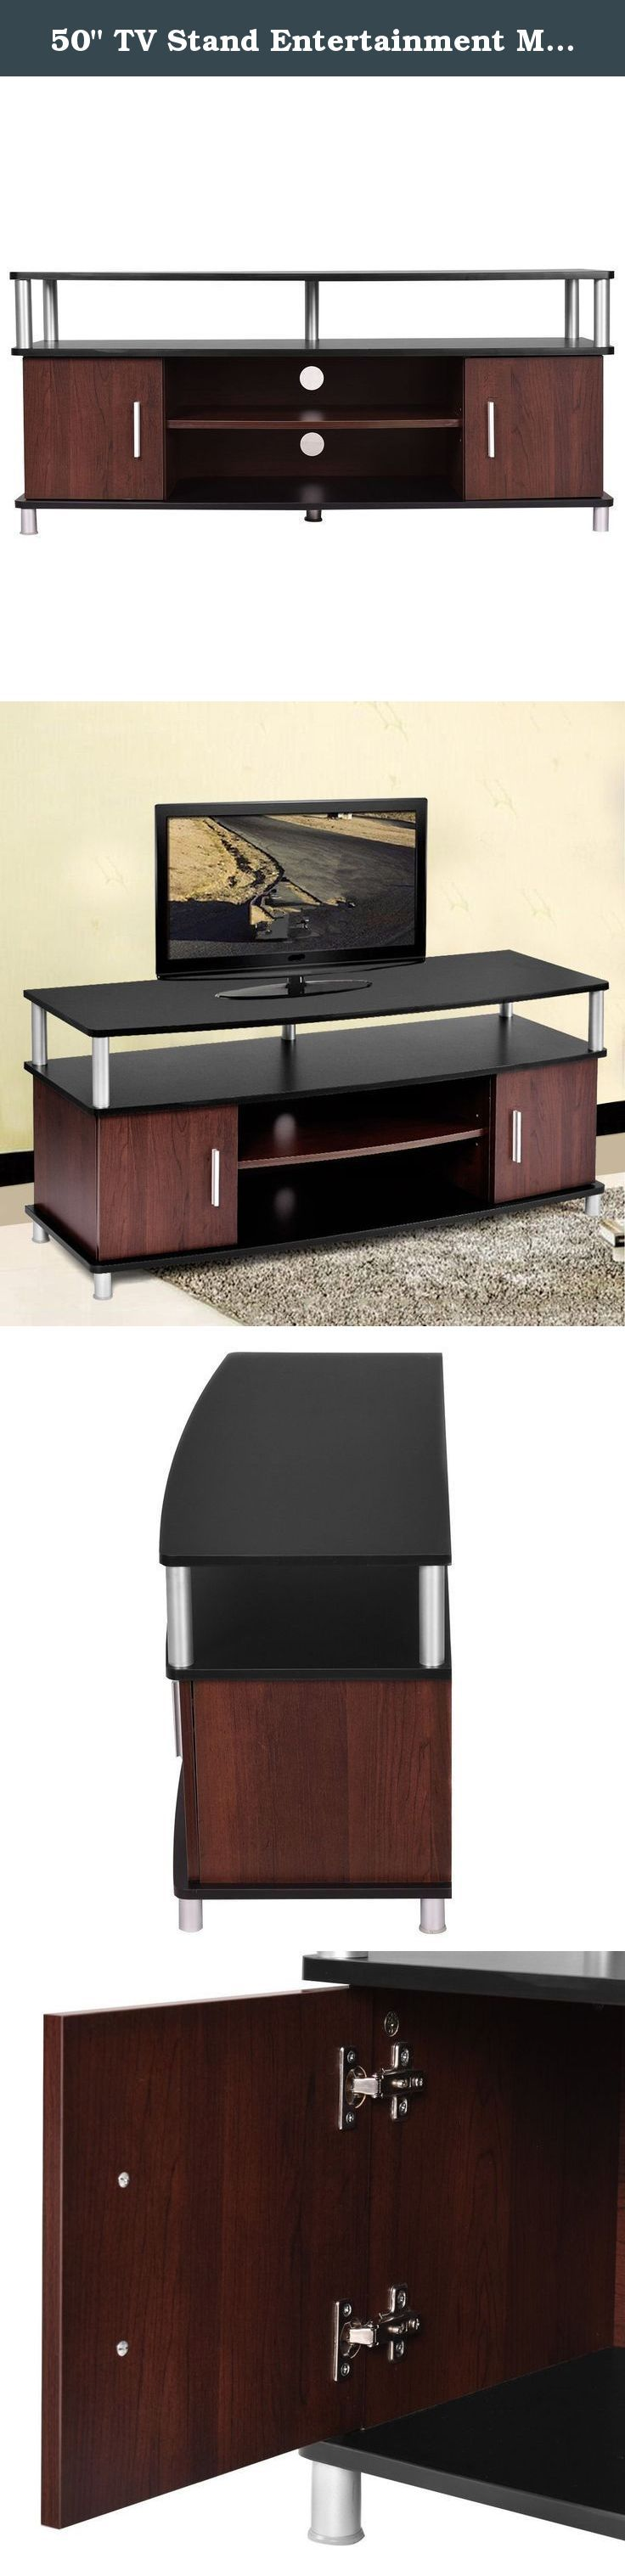 """50"""" TV Stand Entertainment Media Center Storage Wood Cabinet Home Furniture Modern Classic Elegant Decoration. Large TV stand cabinet, with multiple drawers for storage needs. Classic and stable design for long time using, great decoration in house ."""